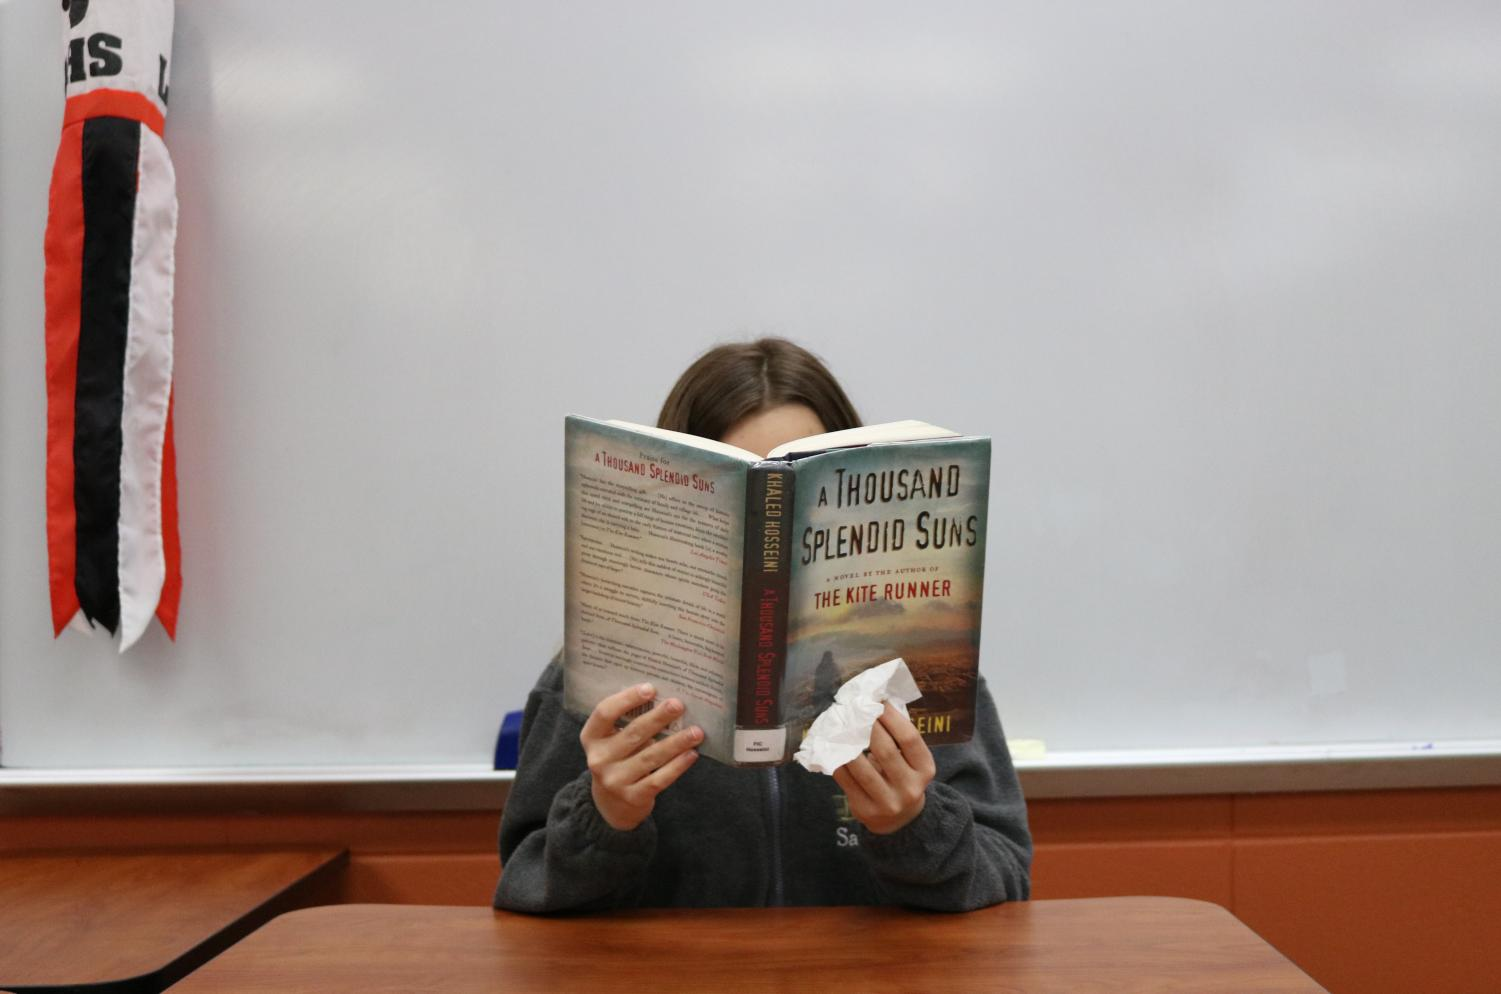 Students are often required to read sad books or watch sad movies in attempt to broaden their understanding of others. For example, A Thousand Splendid Suns is read in most sophomore English classes and leaves some students sad but also aware of those people's hardships.